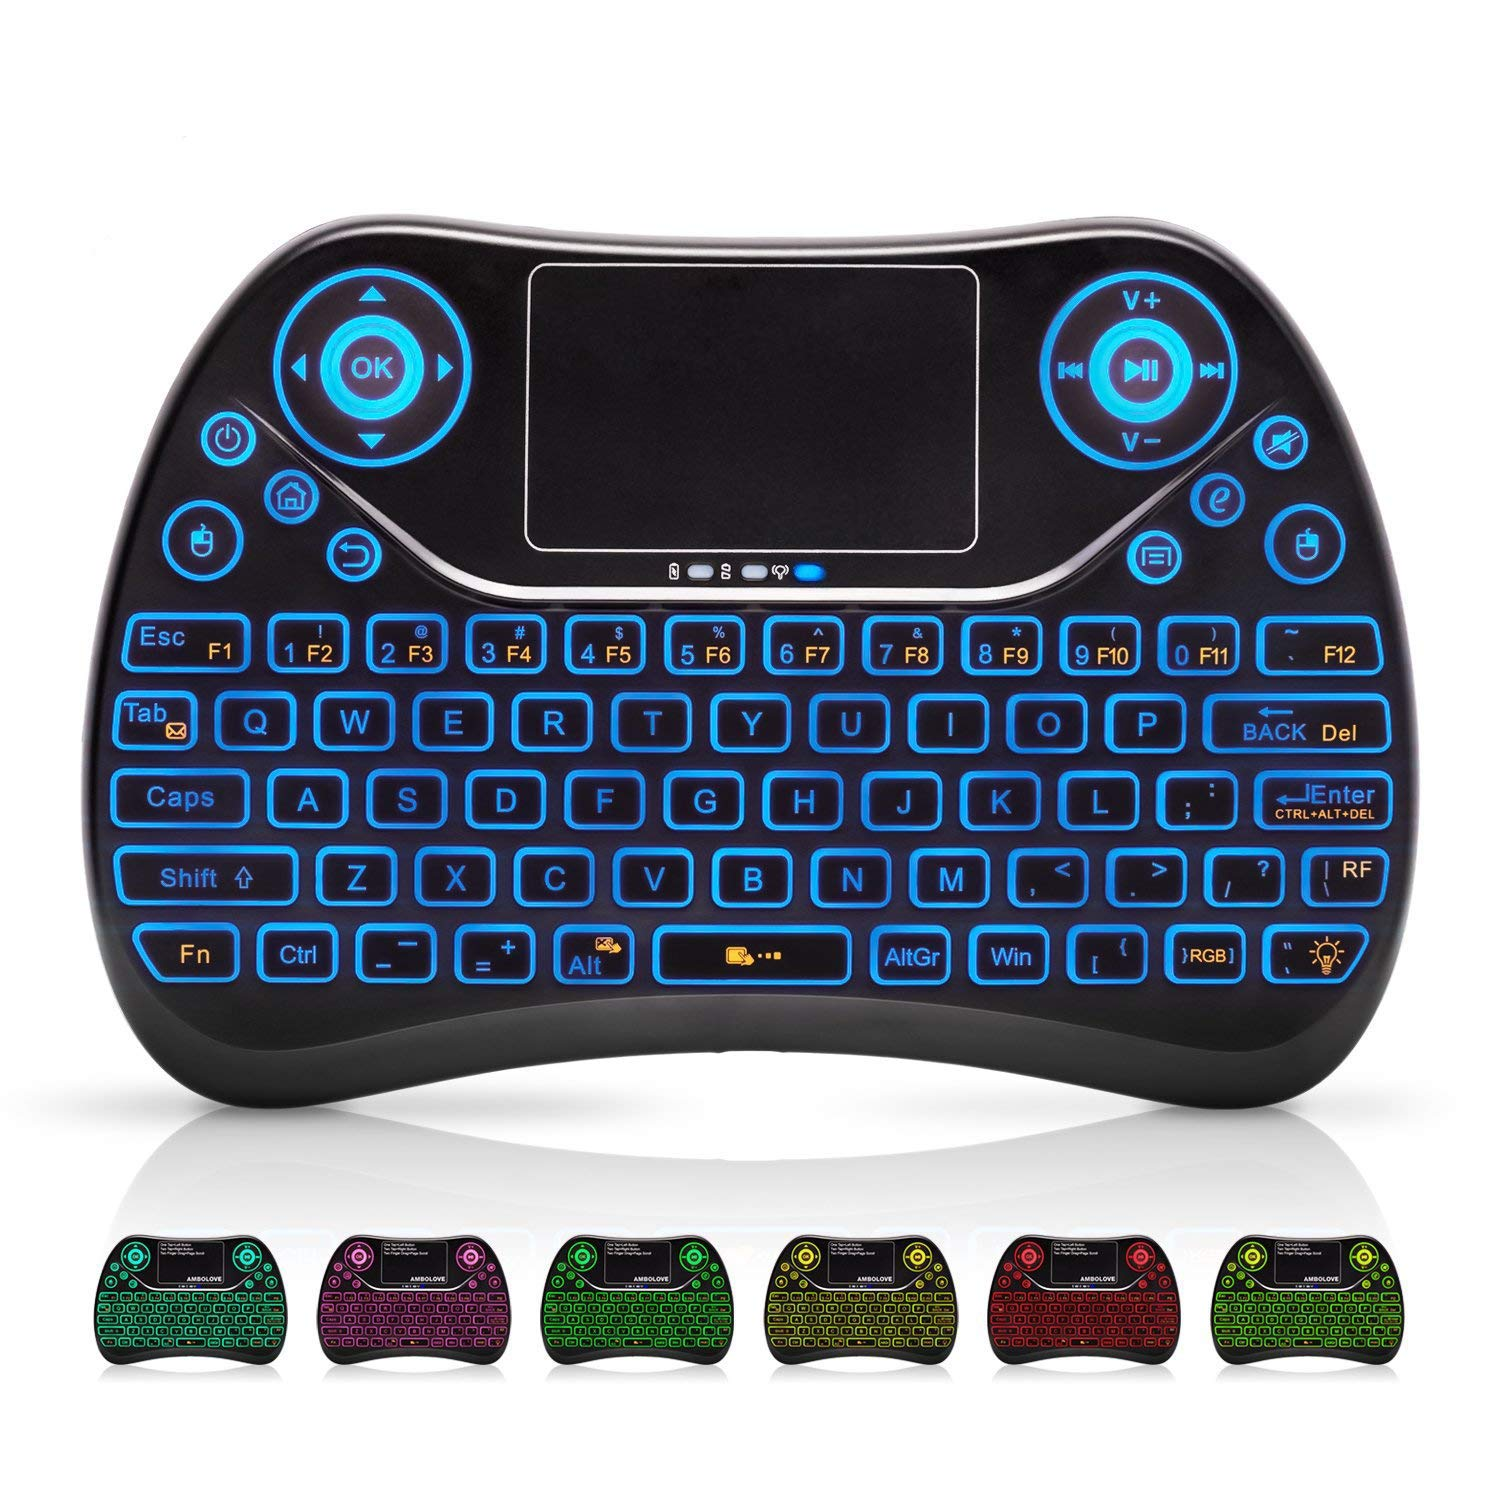 ffb3e2b6960 Amazon.com: Mini Wireless Keyboard, Remote Keyboard with Multimedia Keys,  2.4GHZ USB Rechargable Android Remote for TV Box, Mini Keyboard for Smart  TV,IPTV ...